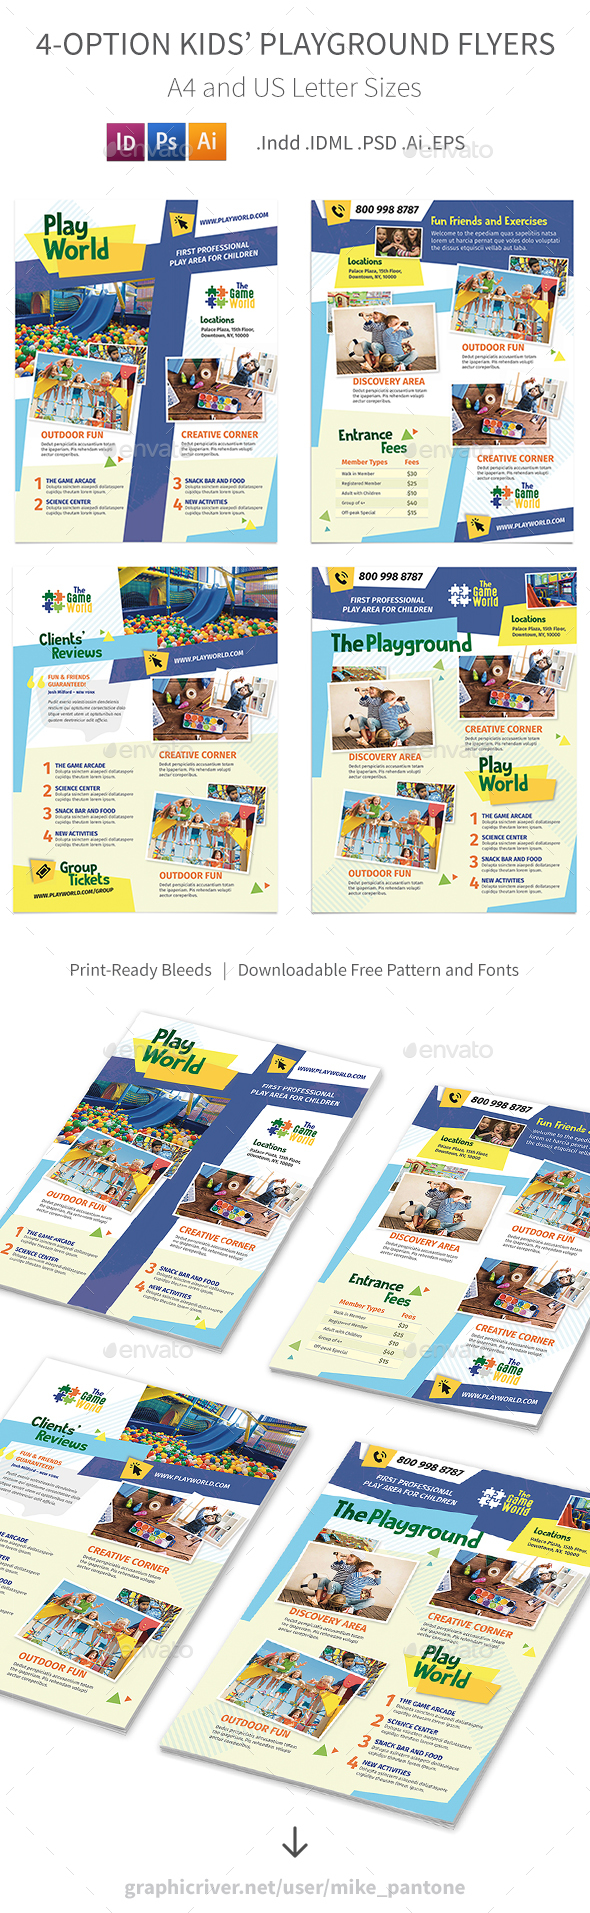 Kids' Playground Flyers – 4 Options - Corporate Flyers